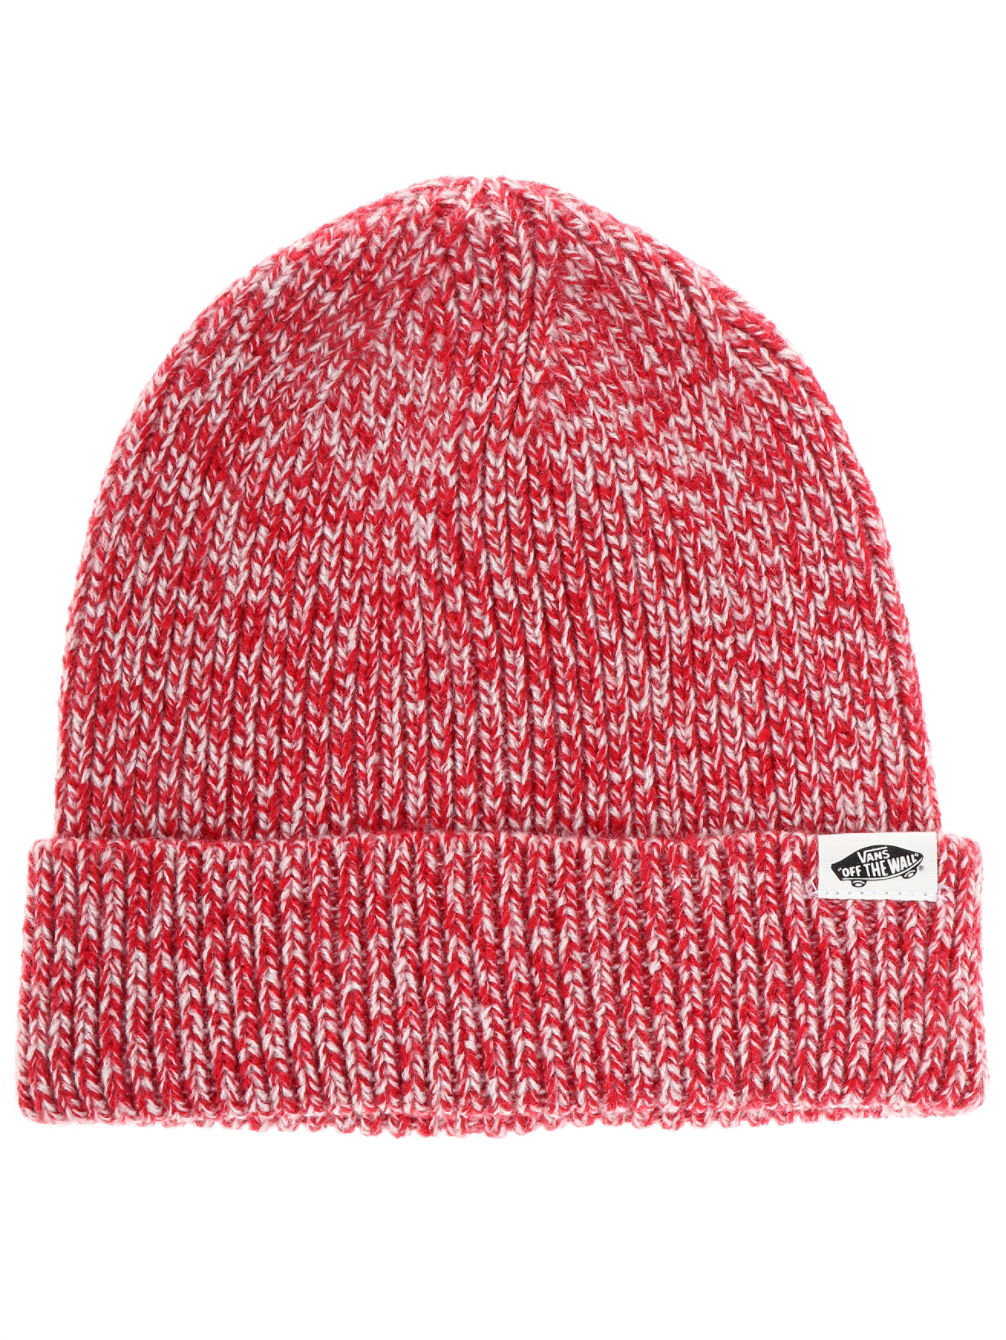 Buy Vans Twilly Beanie online at blue-tomato.com 4336c10350